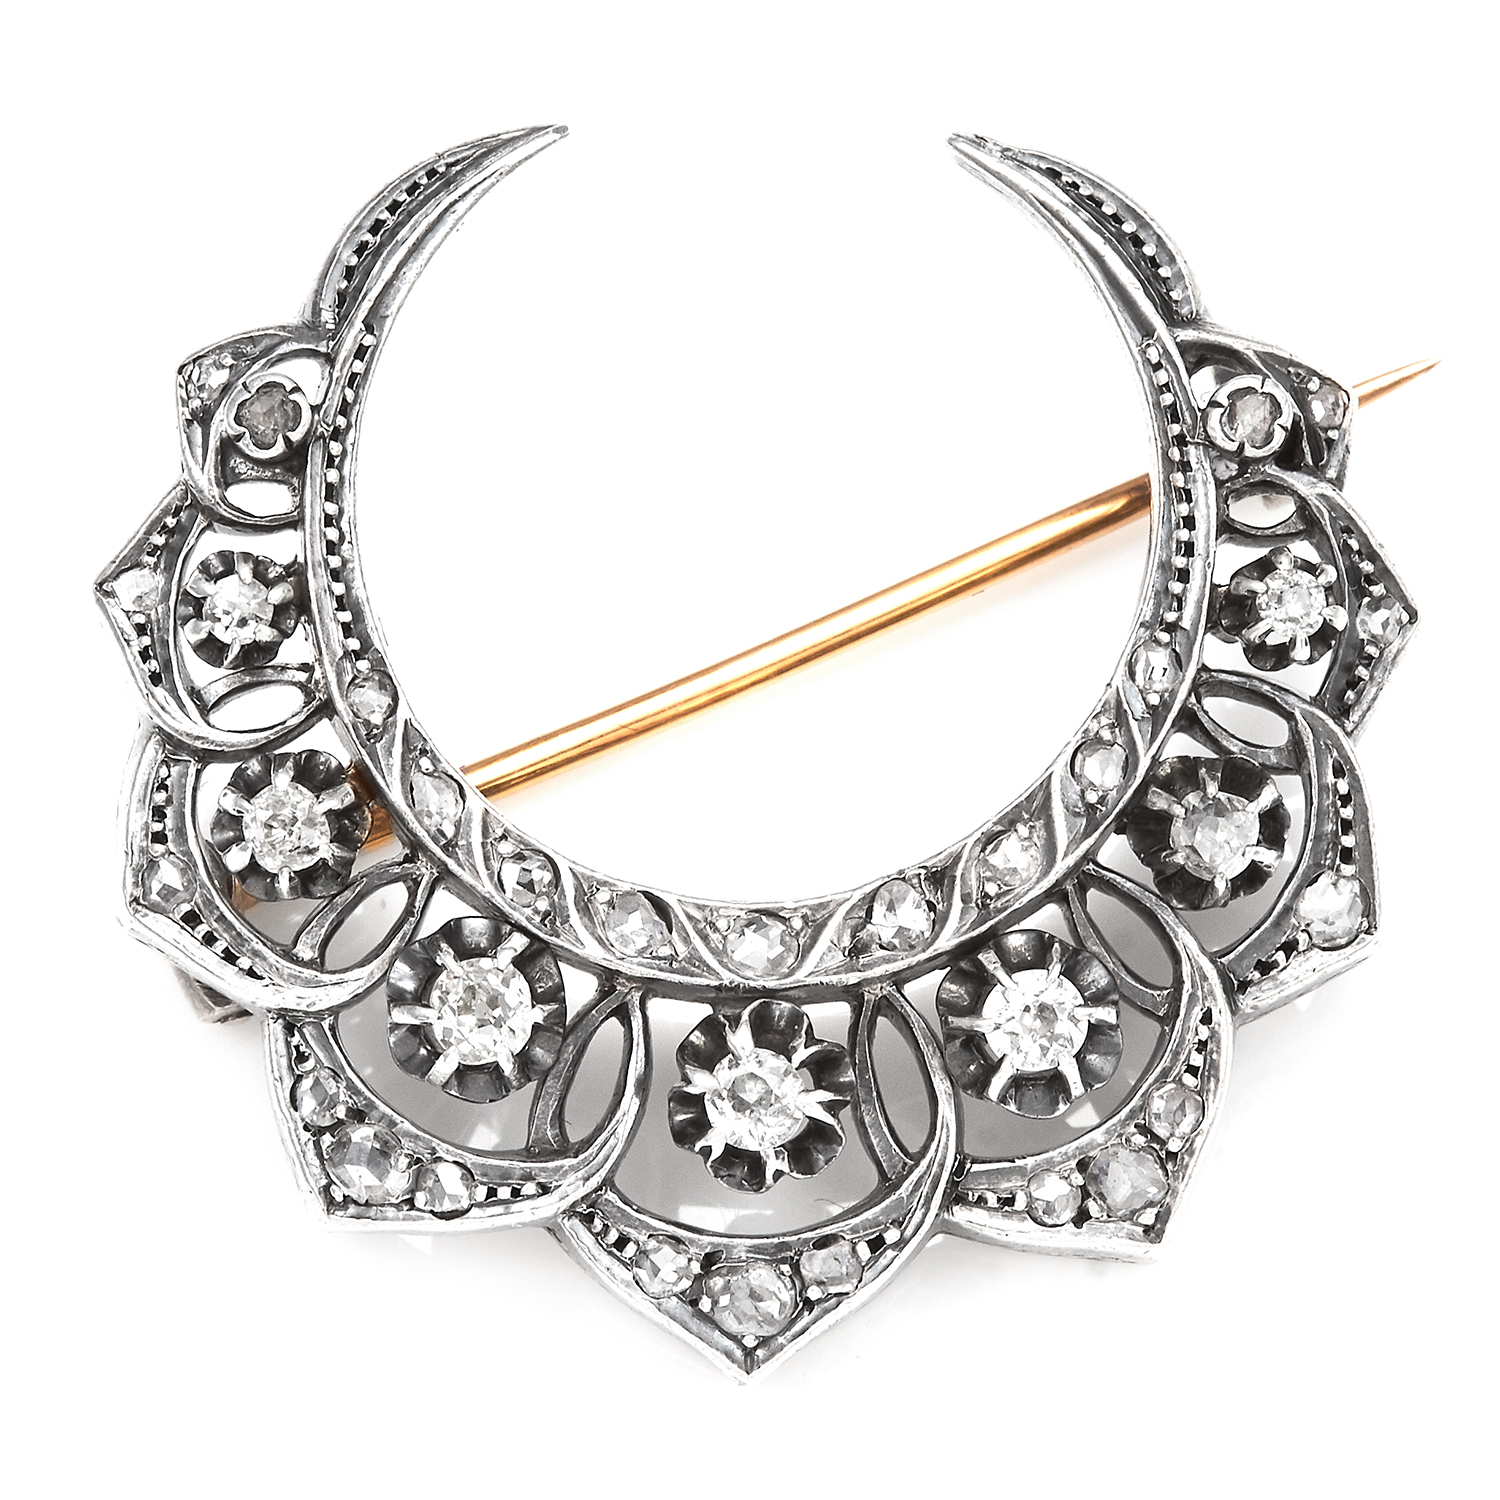 AN ANTIQUE DIAMOND CRESCENT BROOCH in 18ct yellow gold and silver, designed as a crescent jewelled